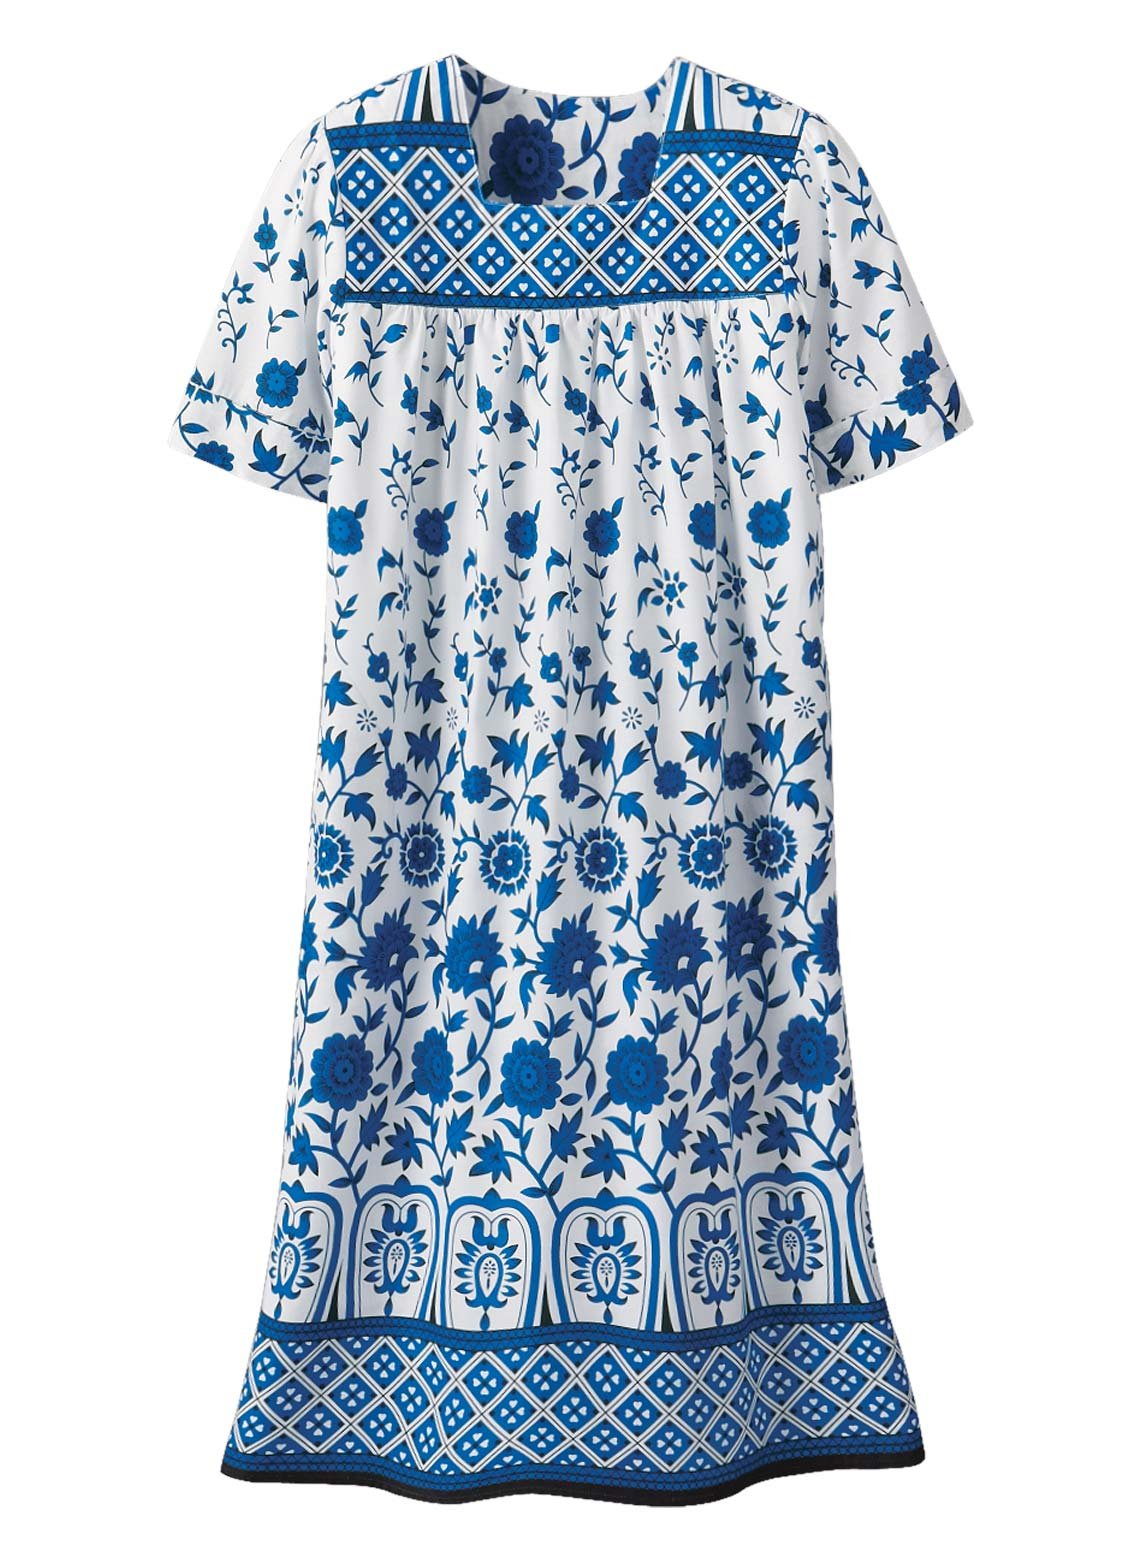 Available at Amazon: Batik Dresses and Loungers for Women Color Royal Size XL Royal Size XL